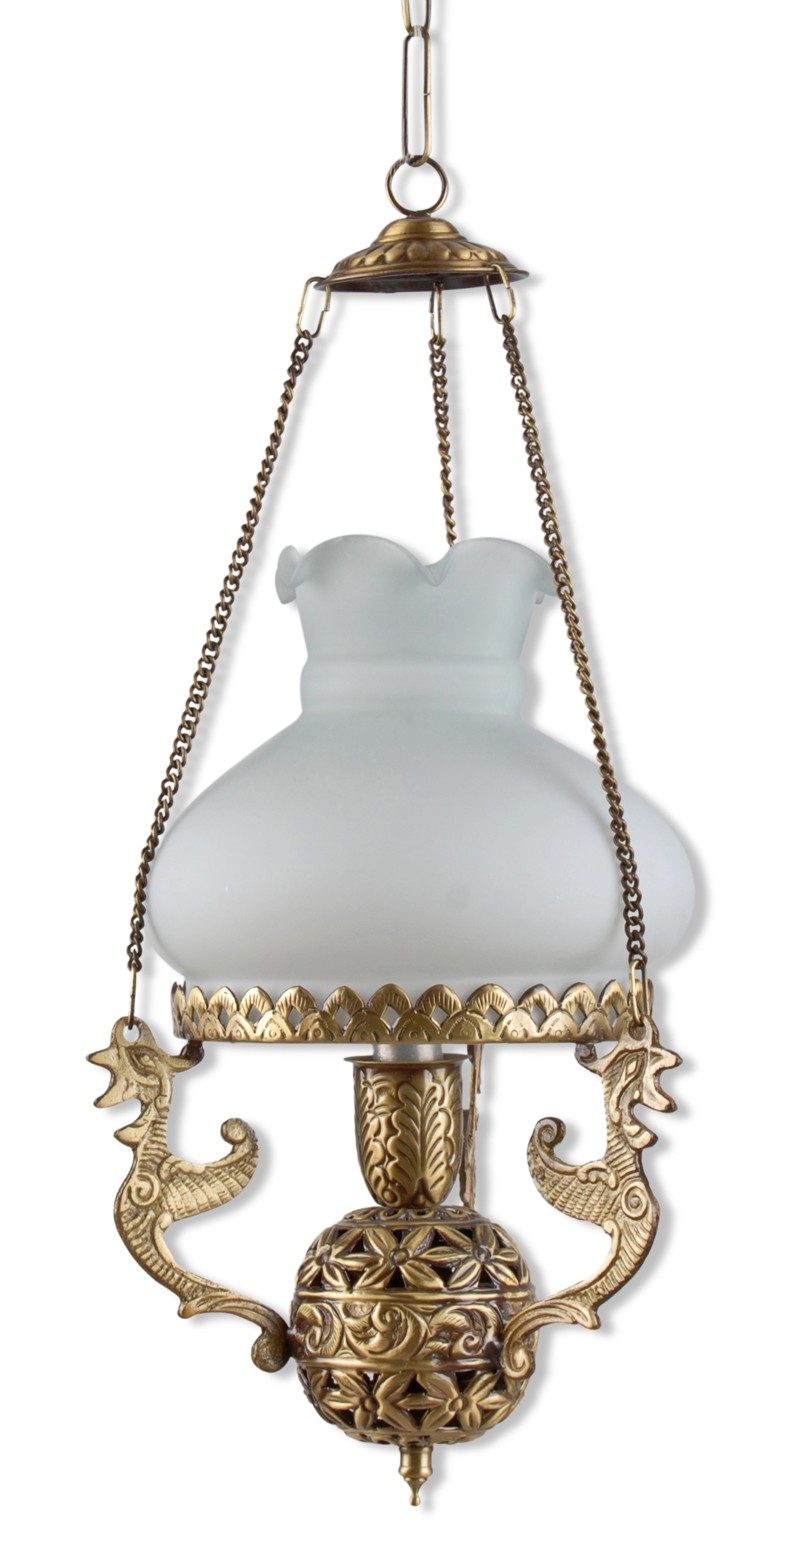 Unique Maharaja Hanging Pendant Light